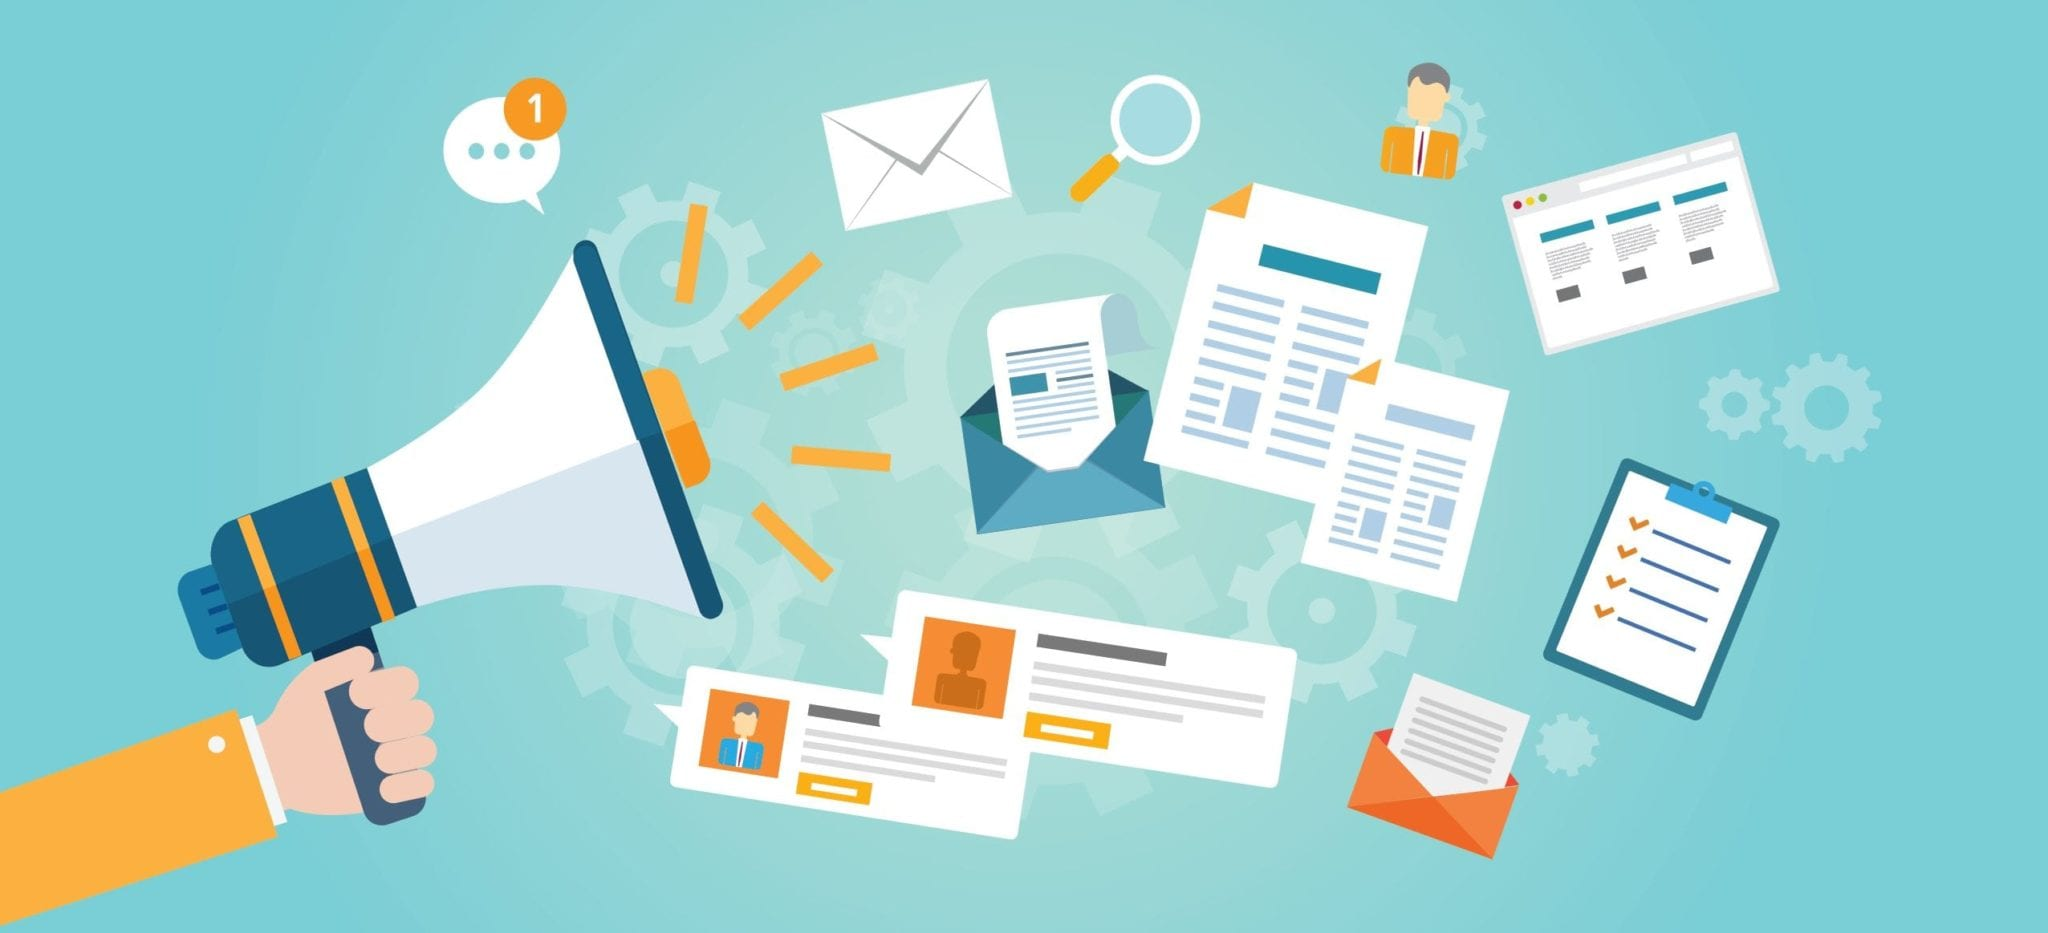 lets-talk-print-or-why-your-website-should-be-a-part-of-your-marketing-plan-not-your-whole-marketing.png